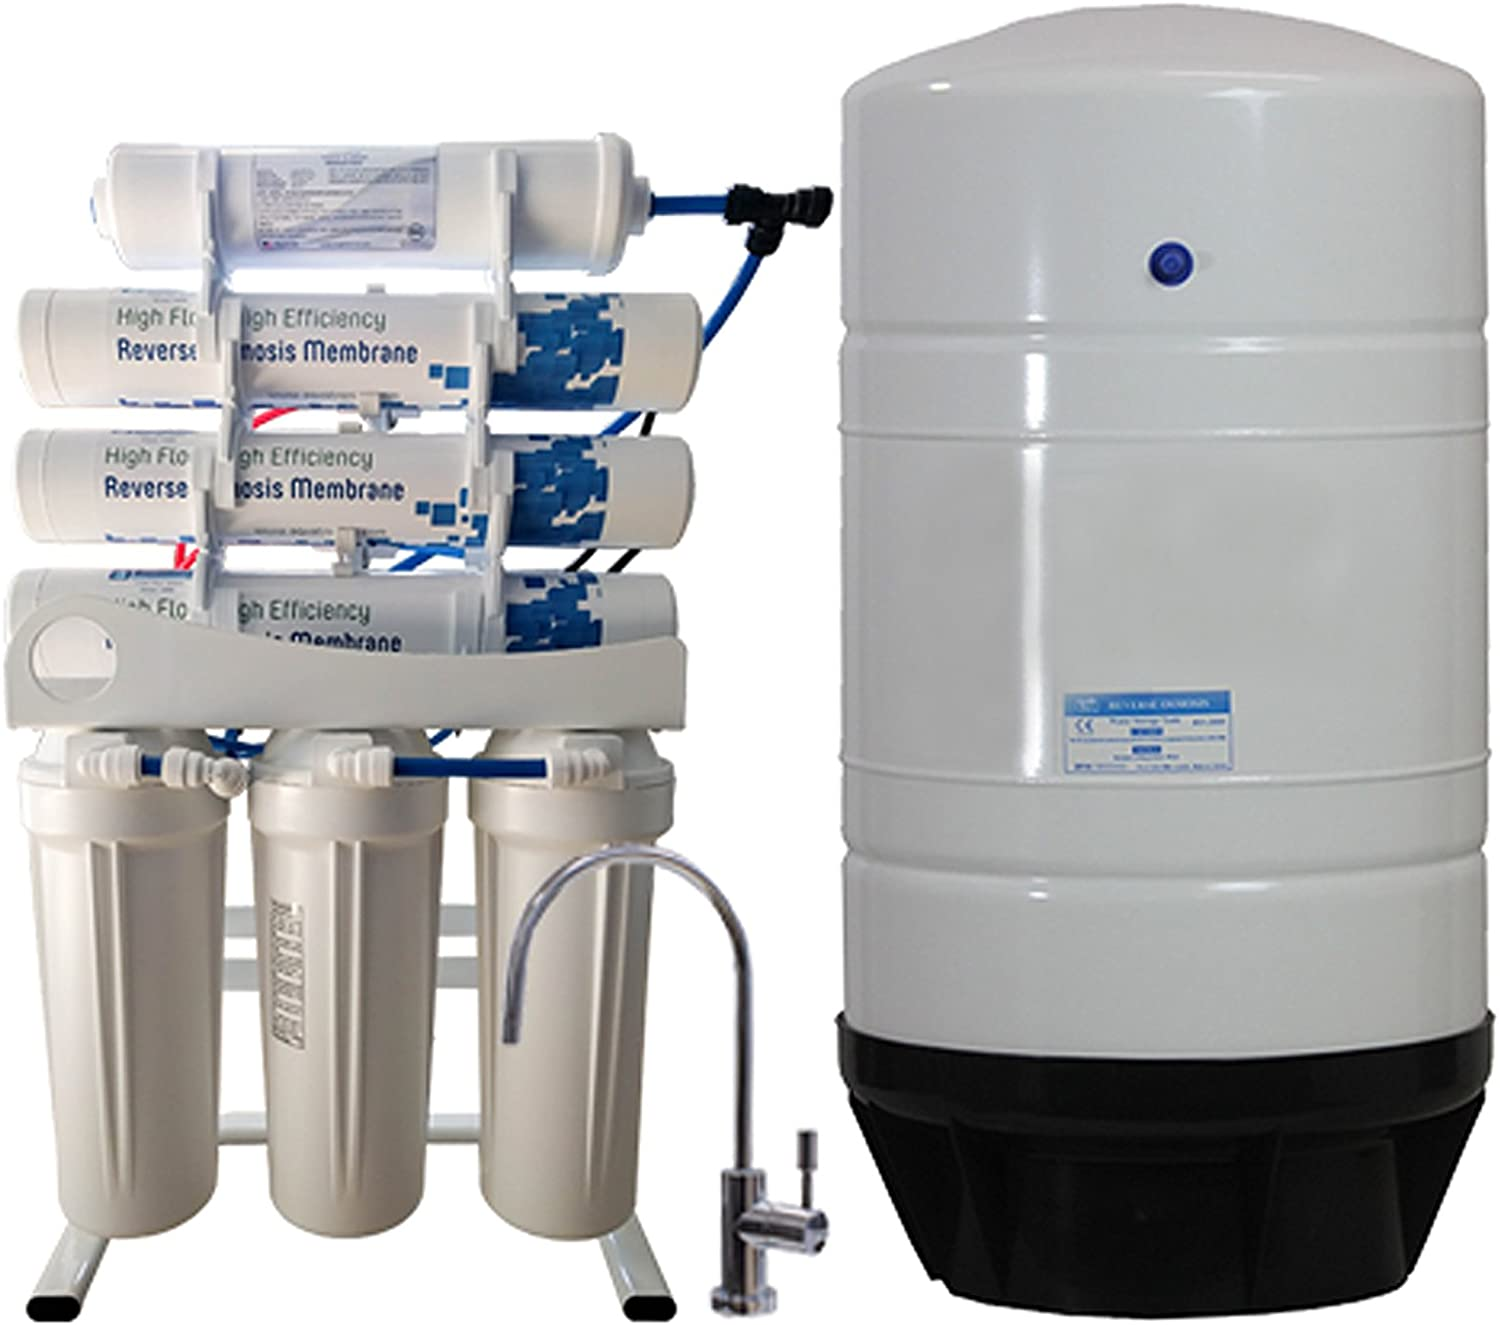 AQUATRON AQAU-LC 225 LIGHT COMMERCIAL REVERSE OSMOSIS SYSTEM